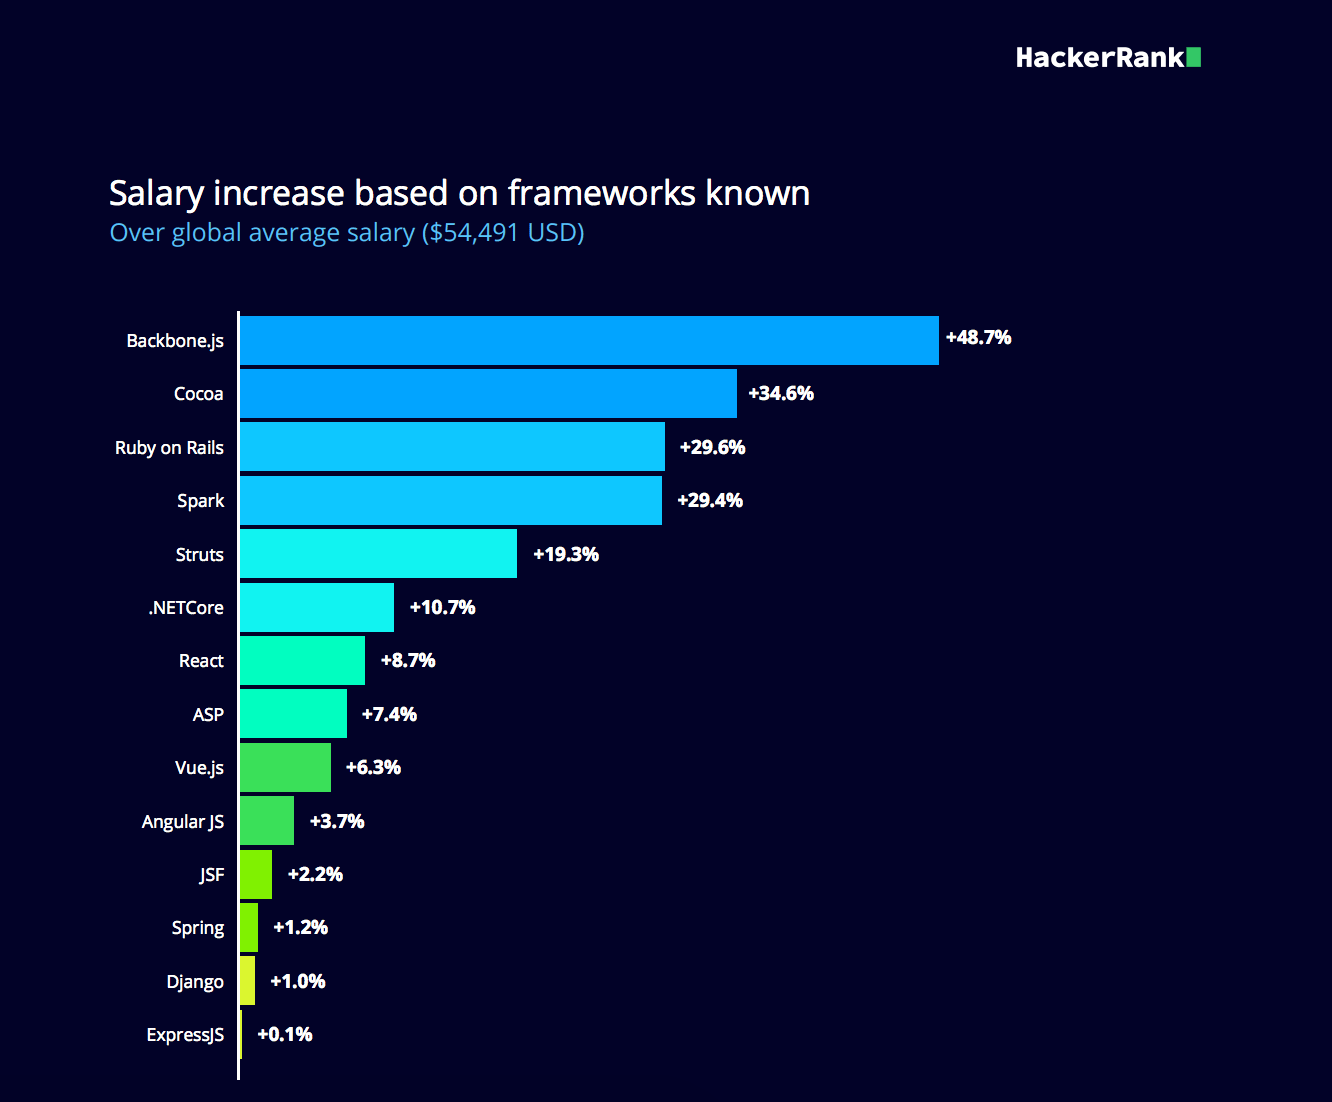 Salary increase based on frameworks known